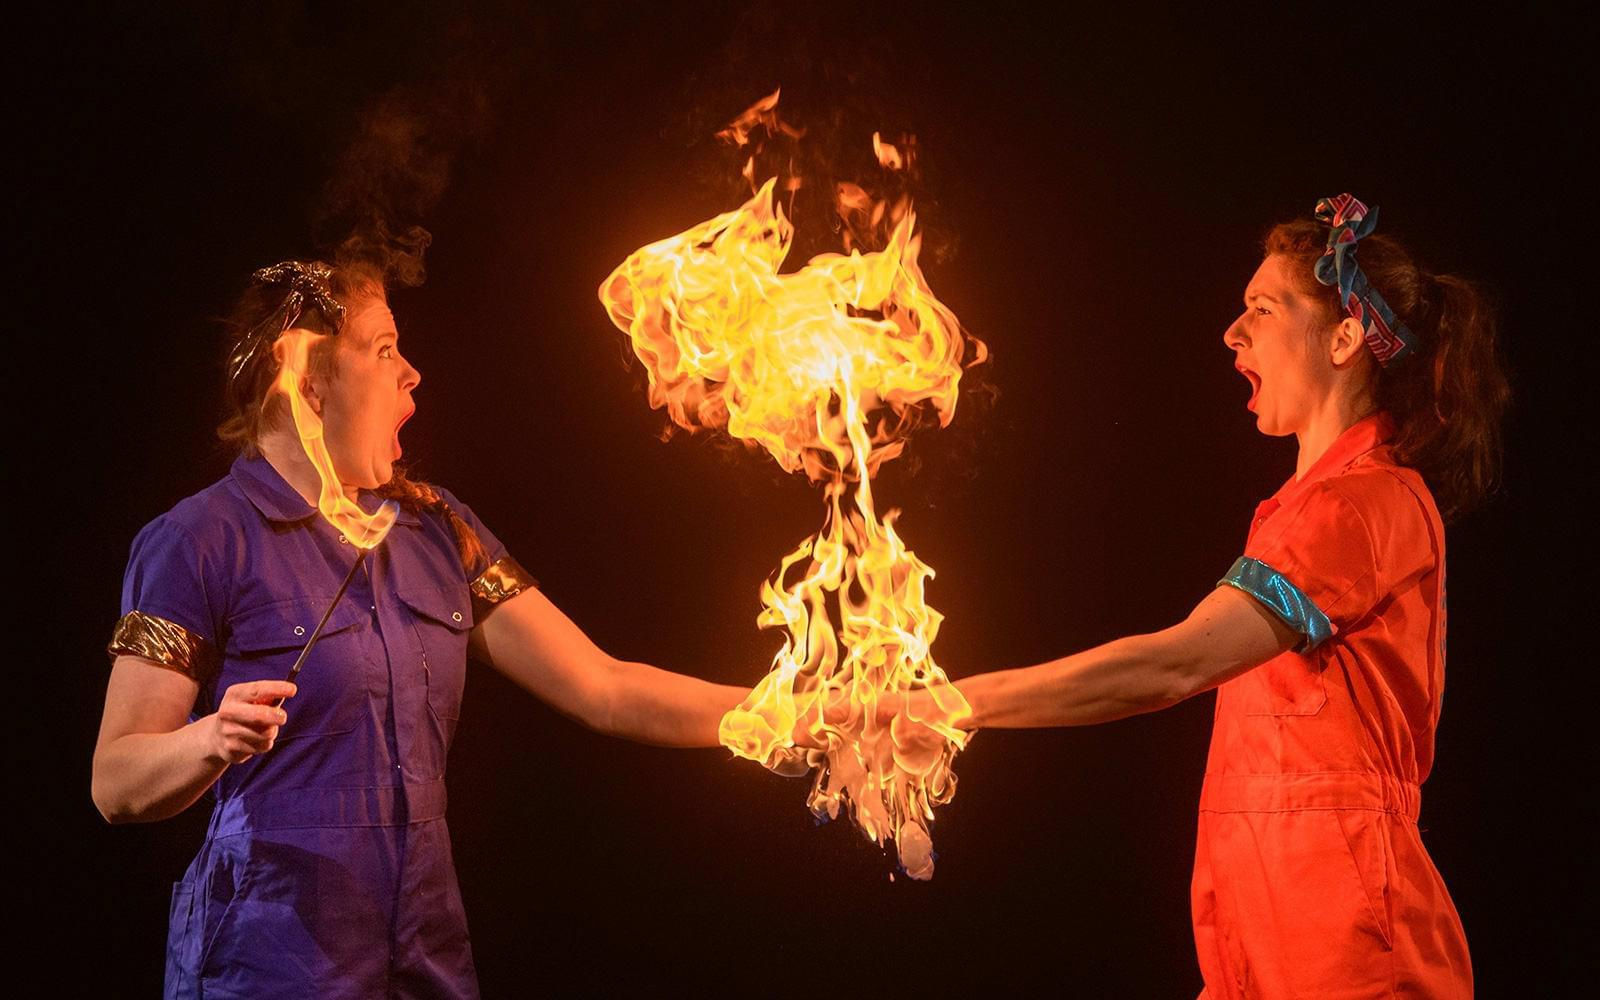 Circus performers with fire